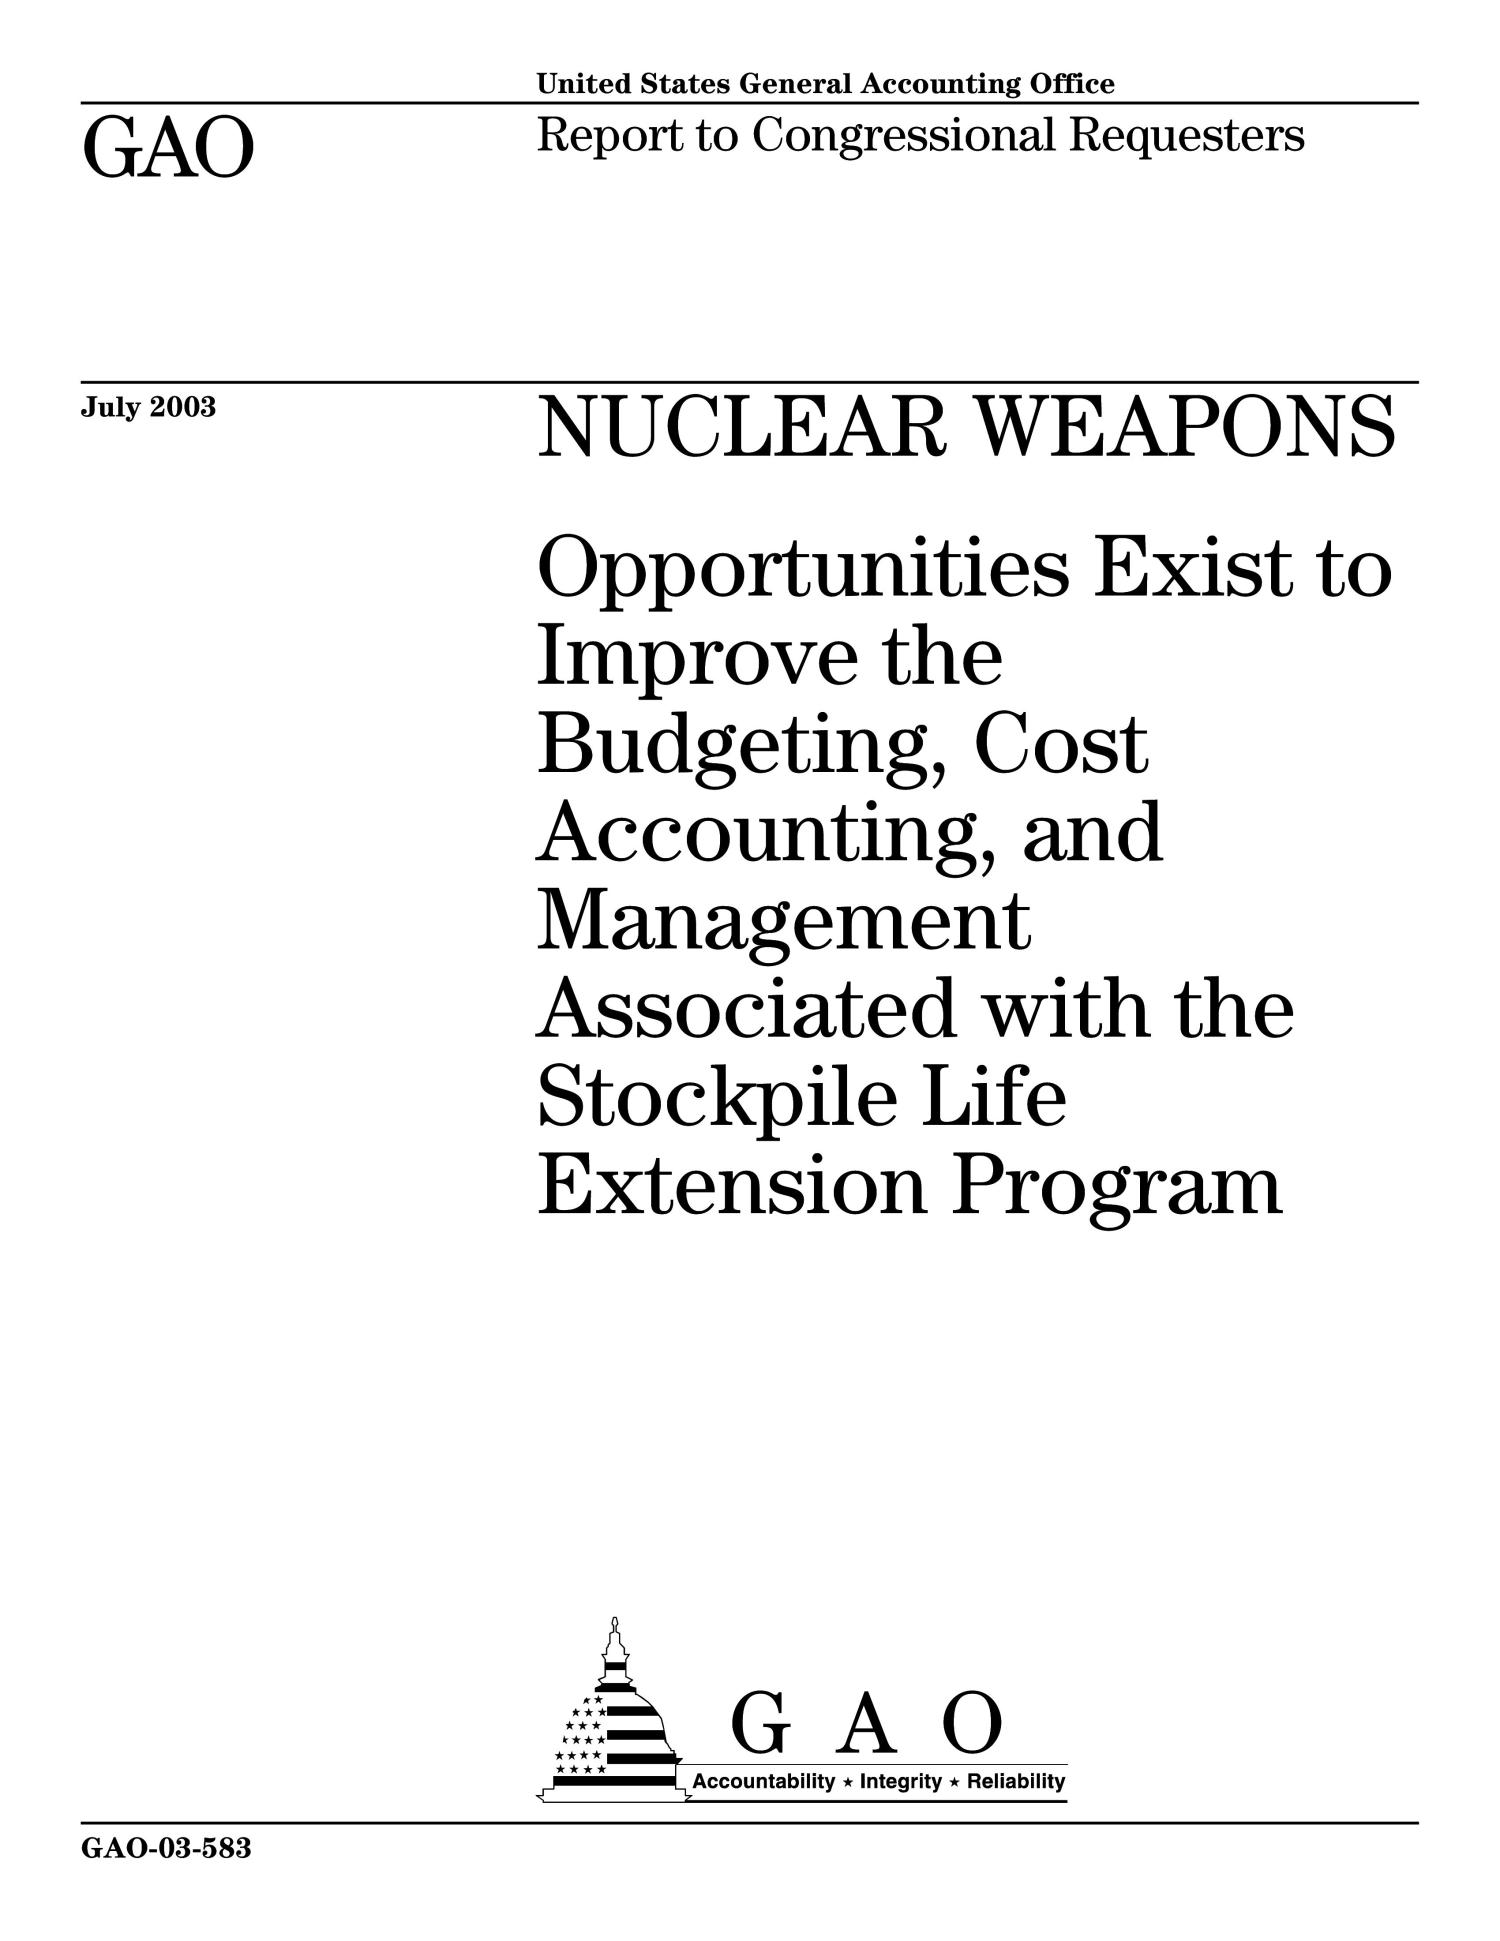 Nuclear Weapons: Opportunities Exist to Improve the Budgeting, Cost Accounting, and Management Associated with the Stockpile Life Extension Program                                                                                                      [Sequence #]: 1 of 48